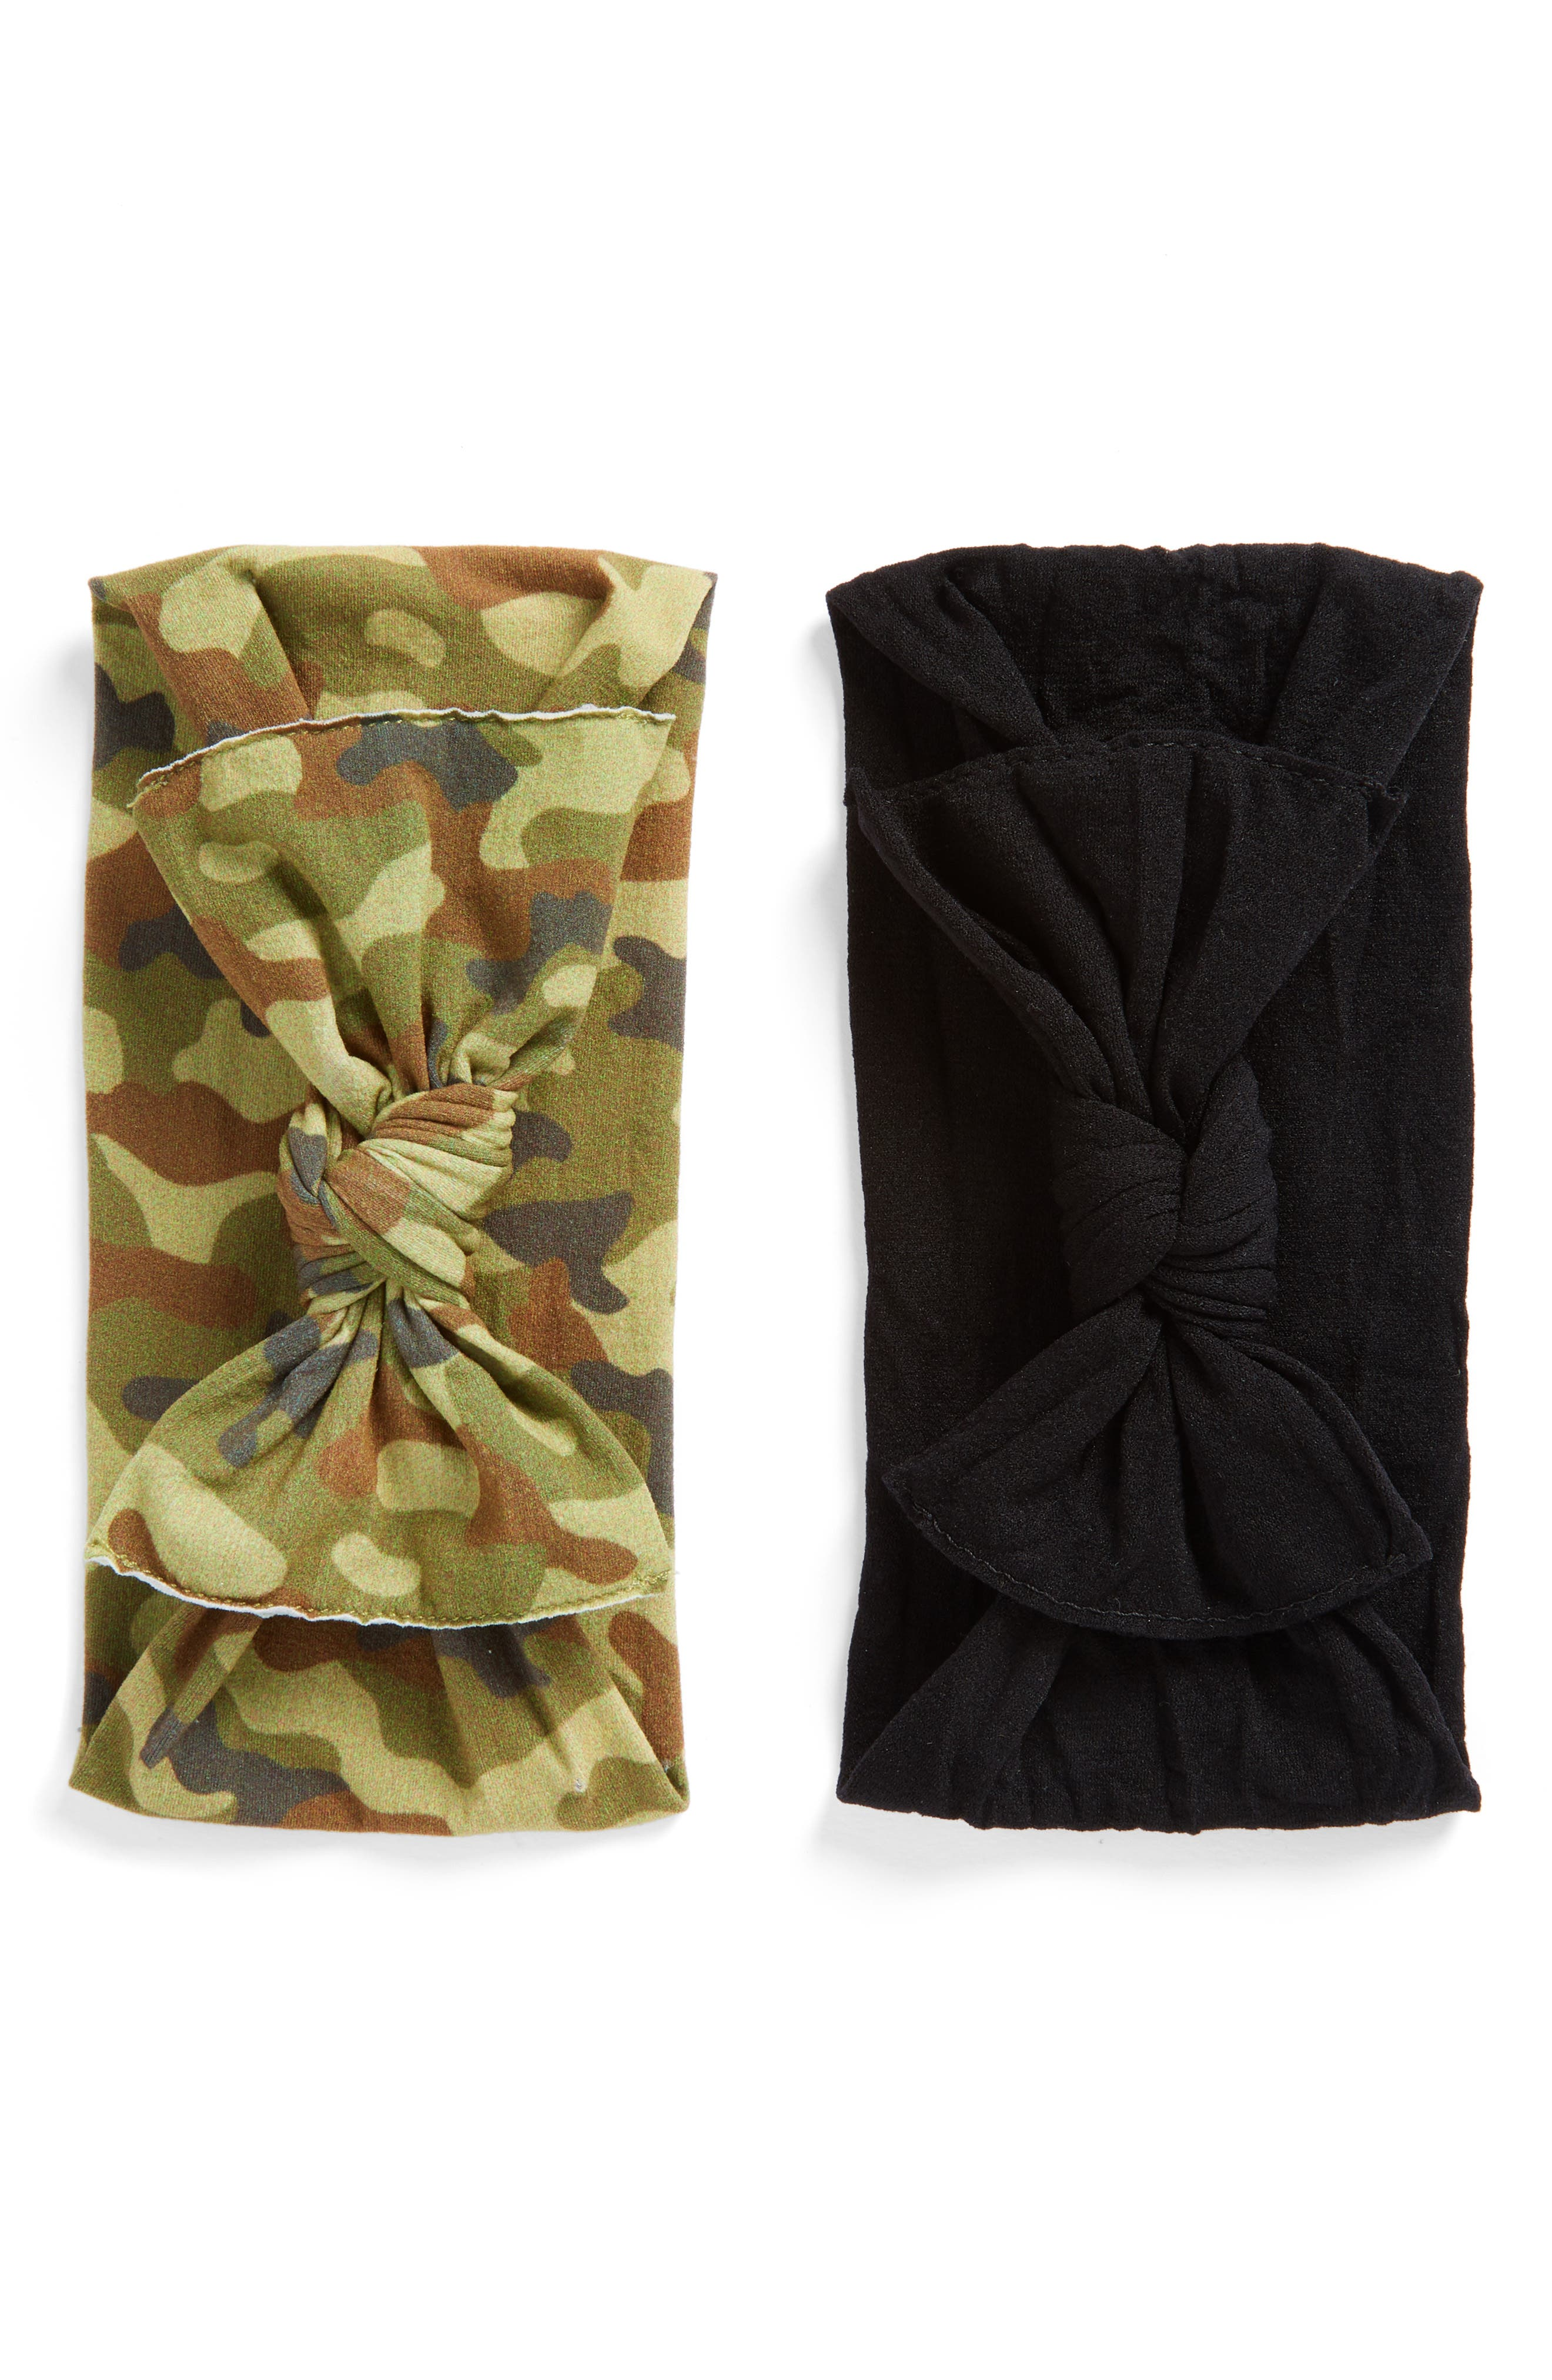 BABY BLING 2-Pack Knotted Headbands, Main, color, NEW CAMO/ BLACK